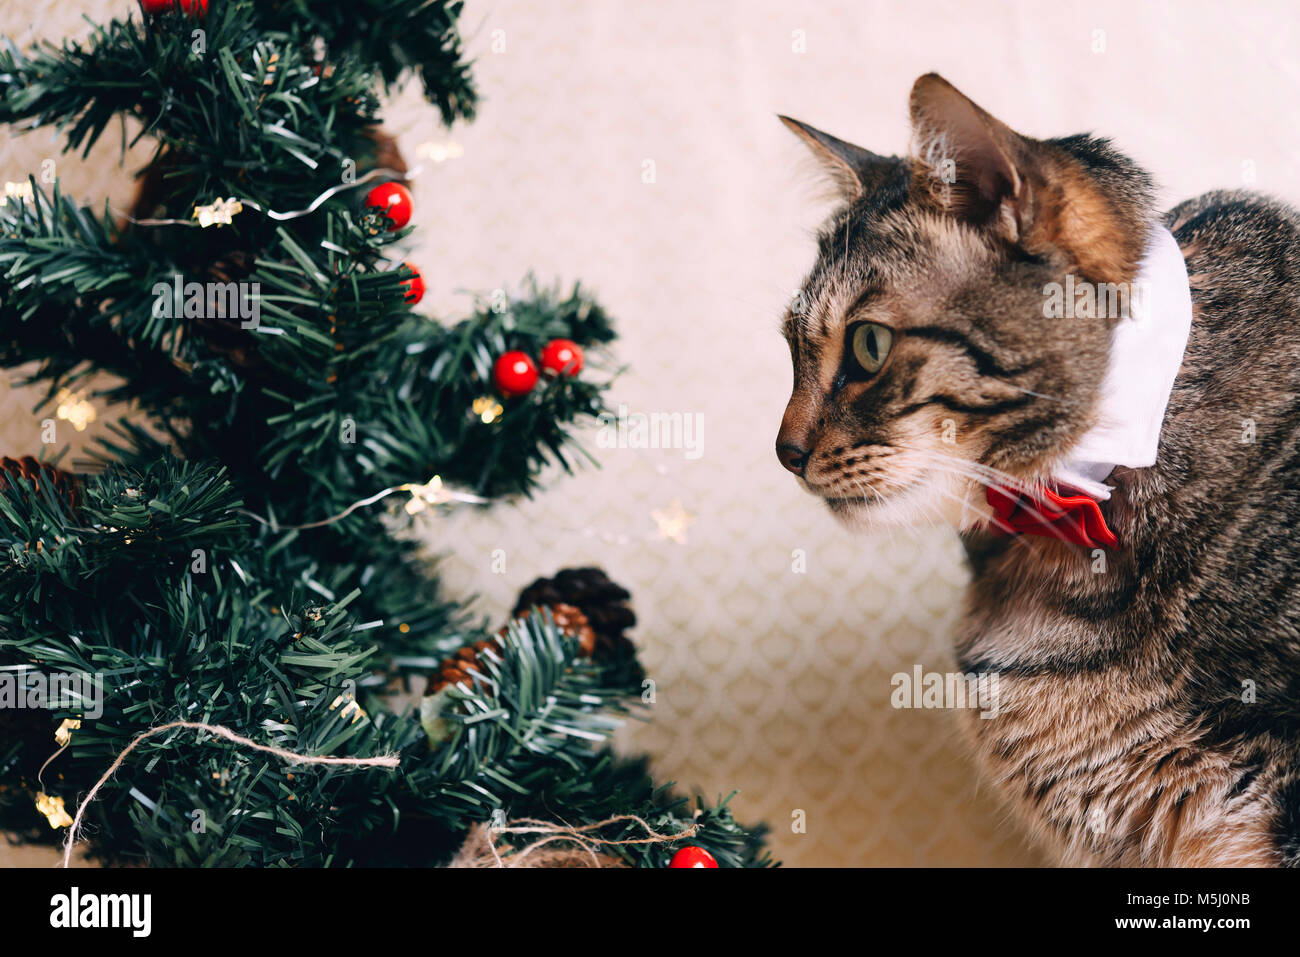 Tabby cat with collar and red bow tie at Christmas time - Stock Image